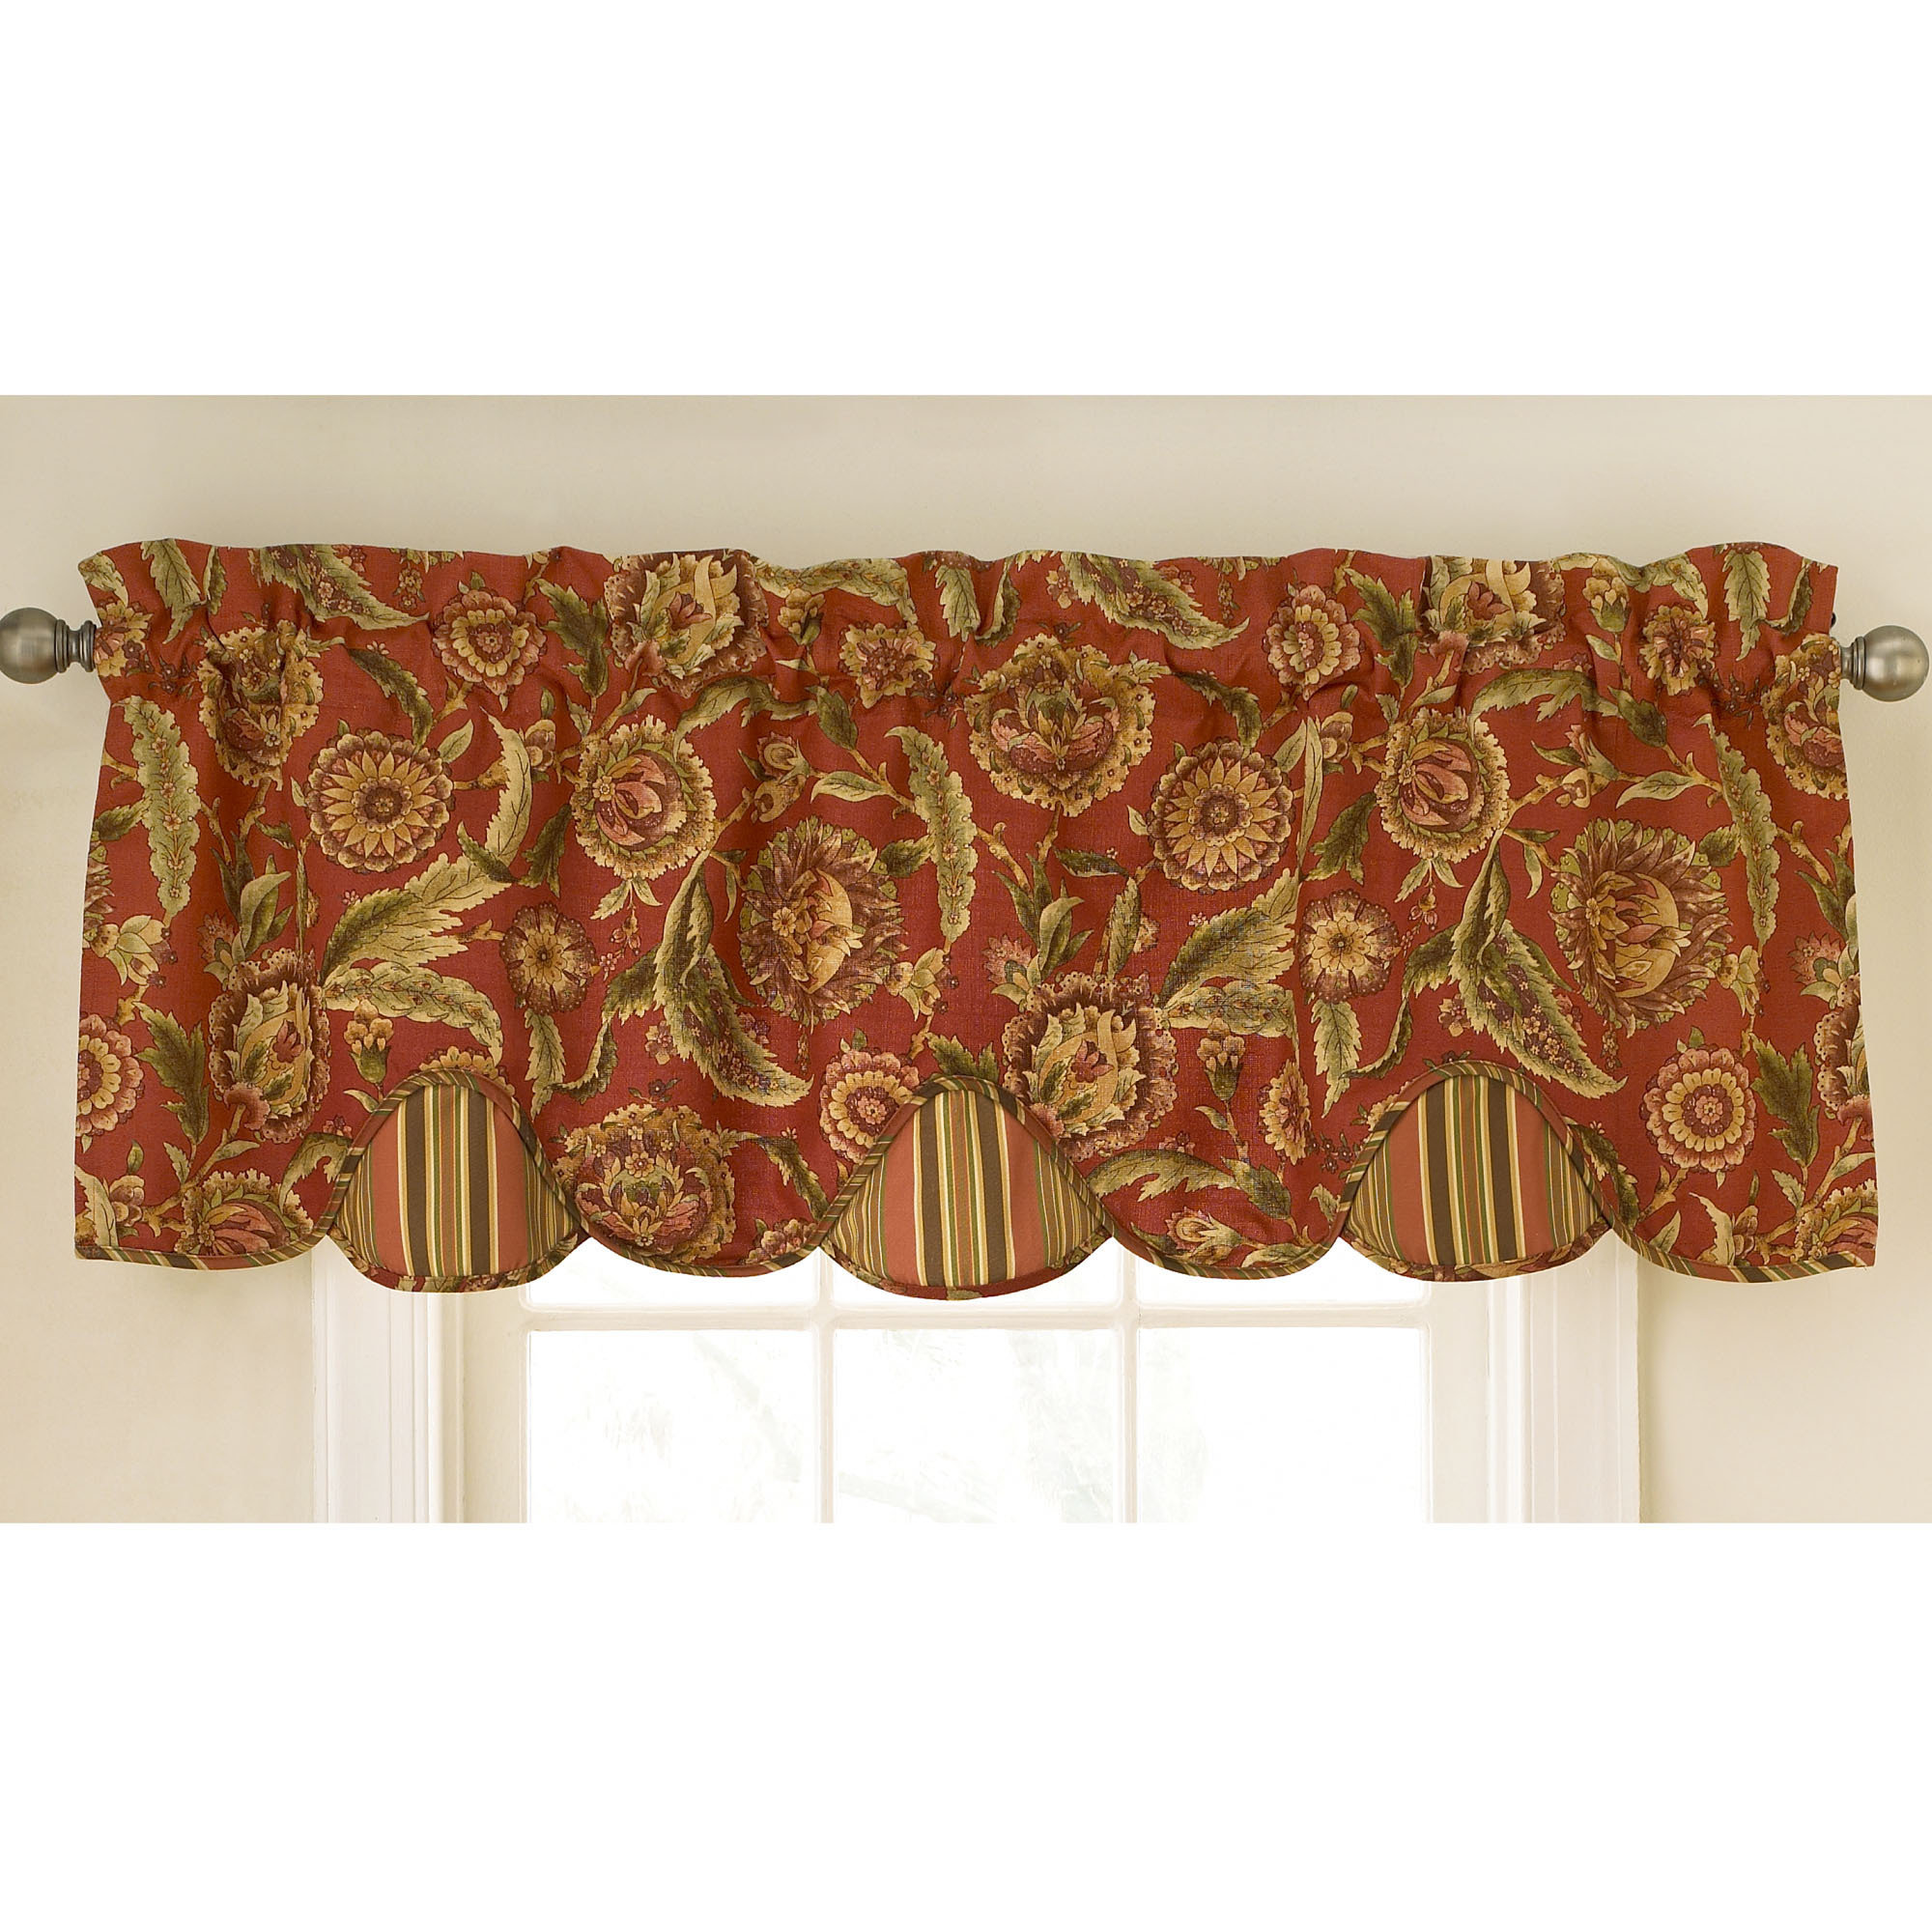 Waverly kitchen curtains and valances kitchen ideas for Valance curtains for kitchen